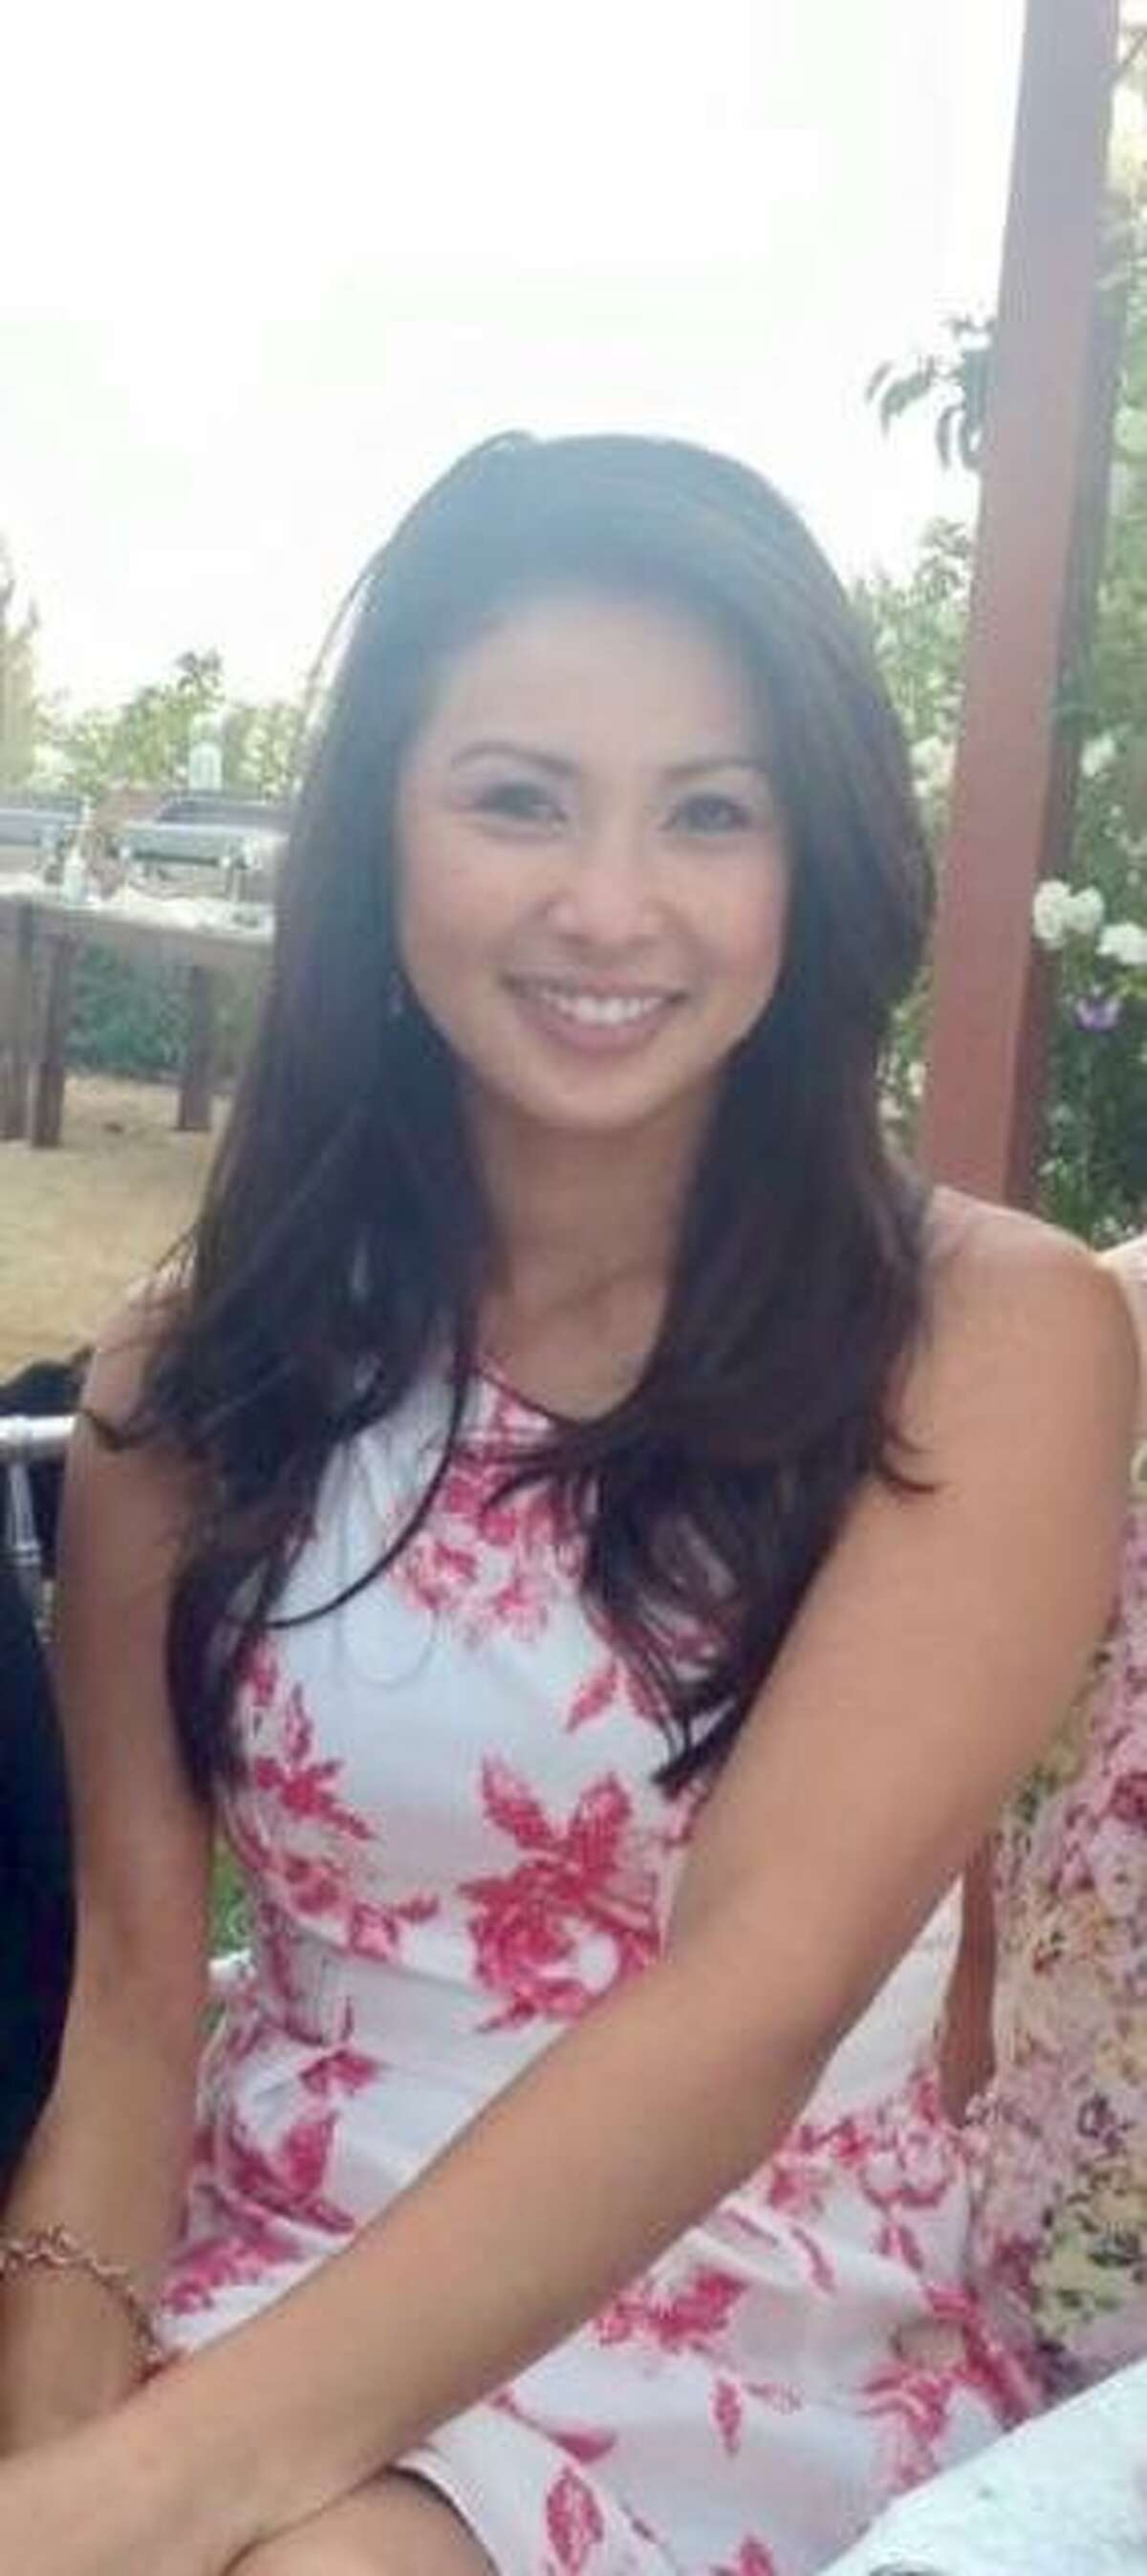 Friends described San Jose native Michelle Vo as a ball of energy and role model.